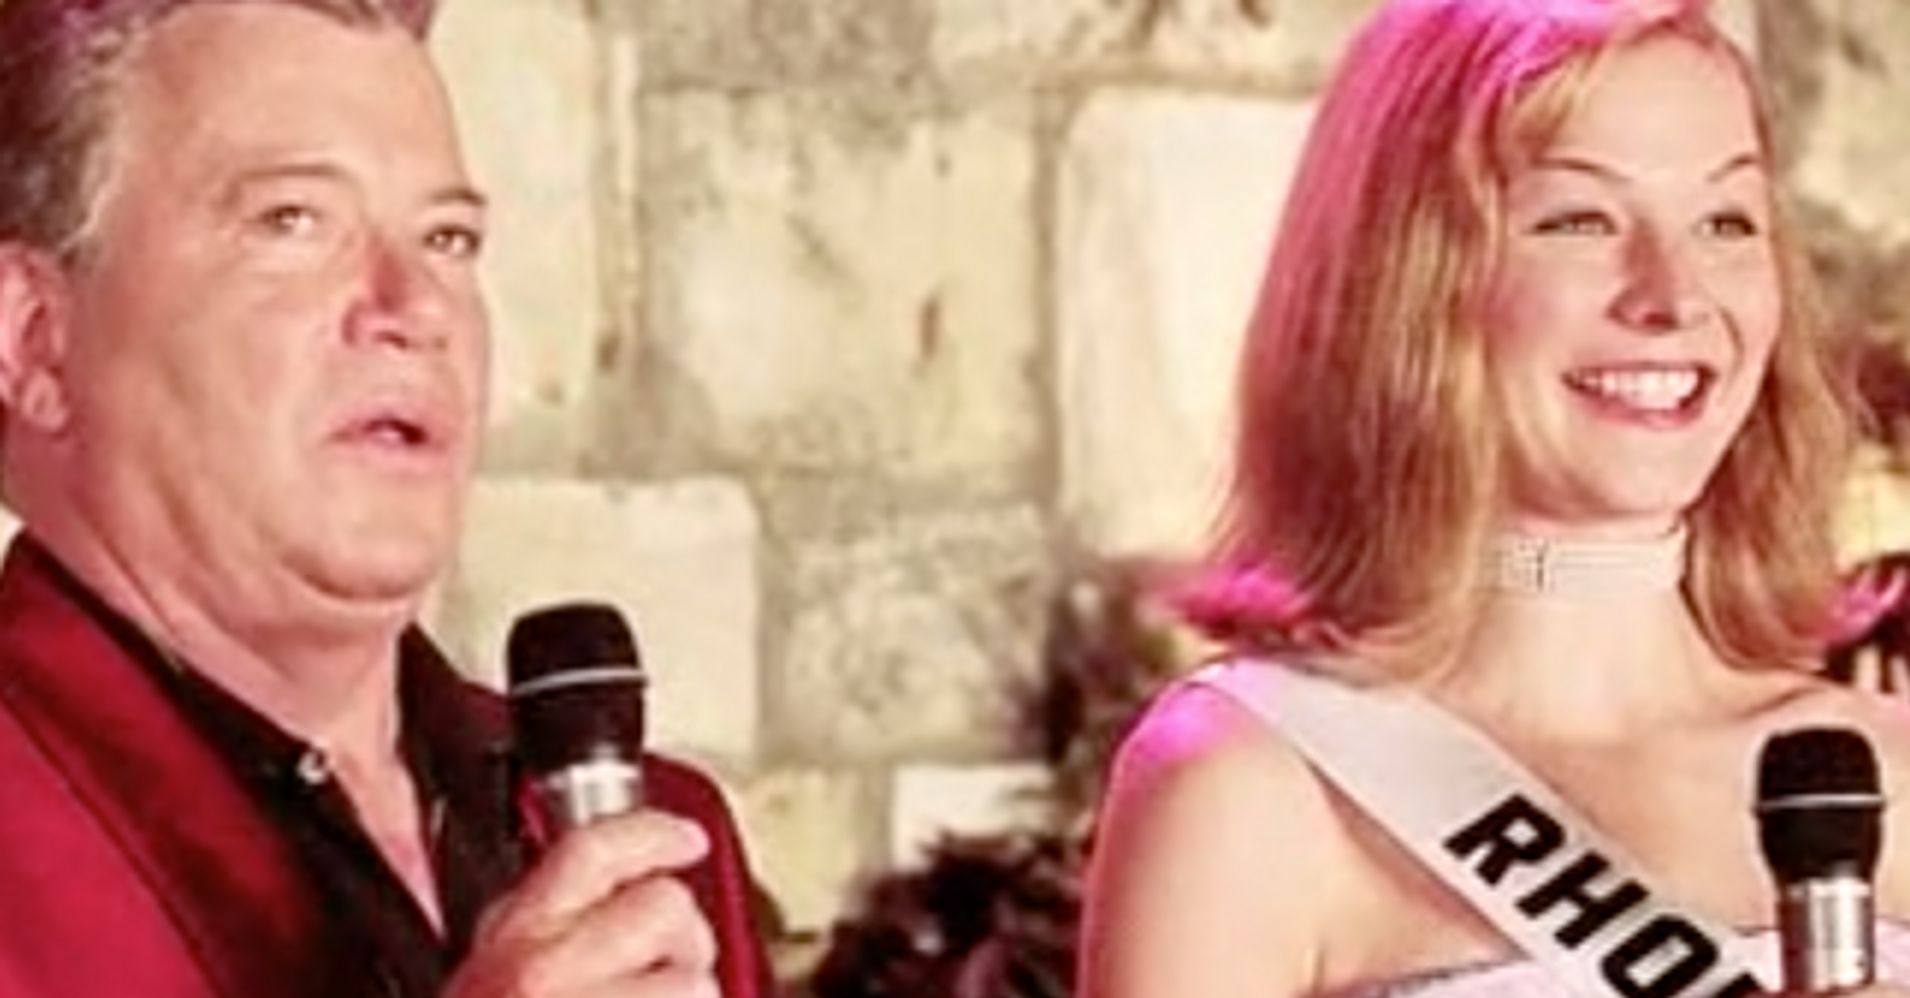 miss congeniality perfect date quote